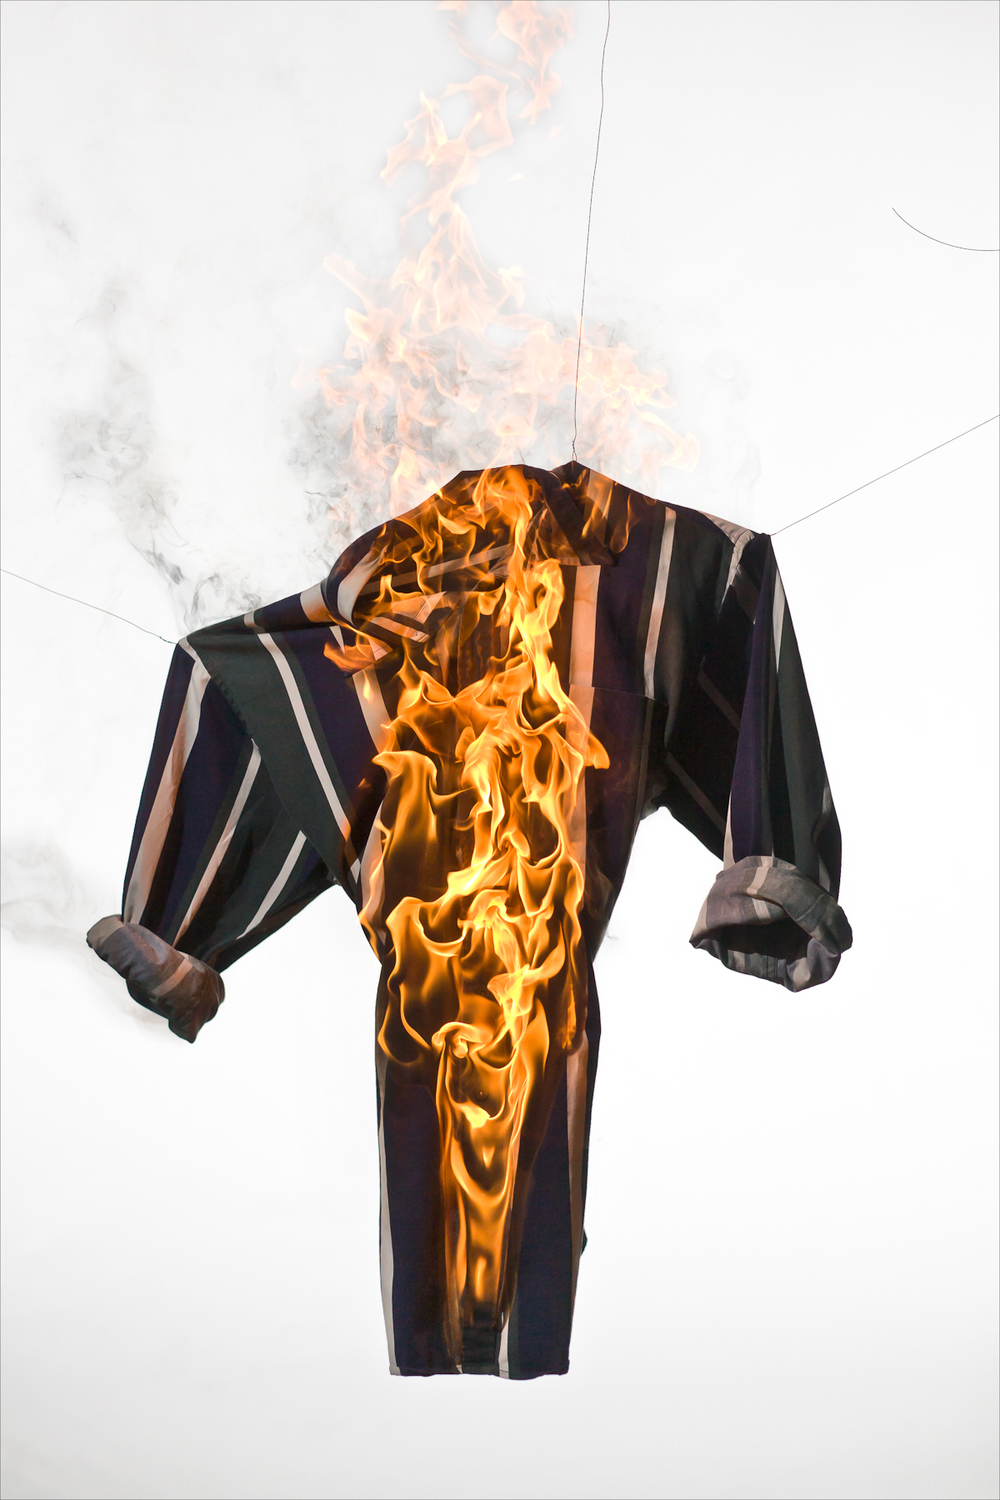 burning_garments-003.jpg